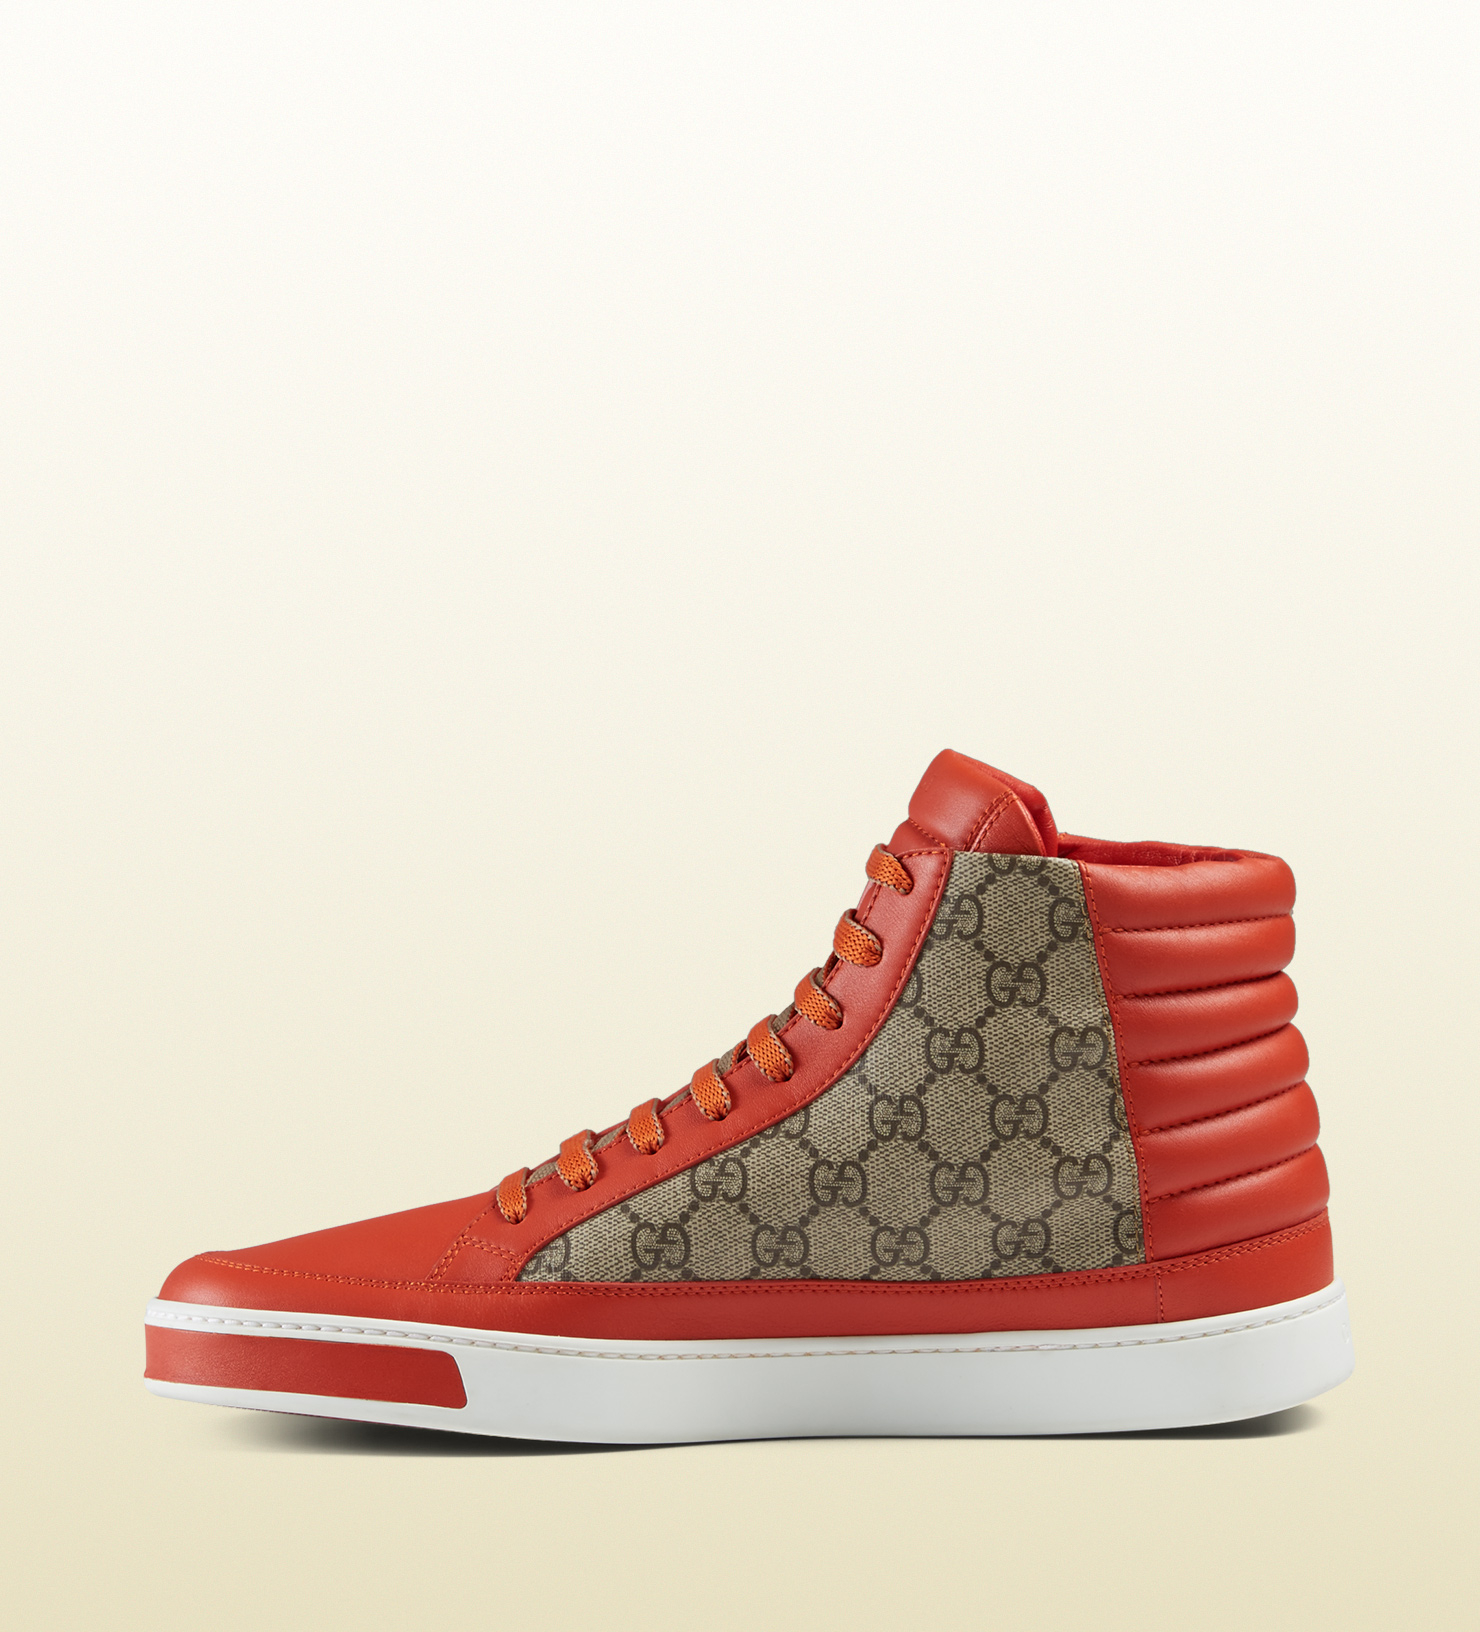 335365f6f Gucci Gg Supreme And Leather High-top Sneaker in Orange for Men - Lyst